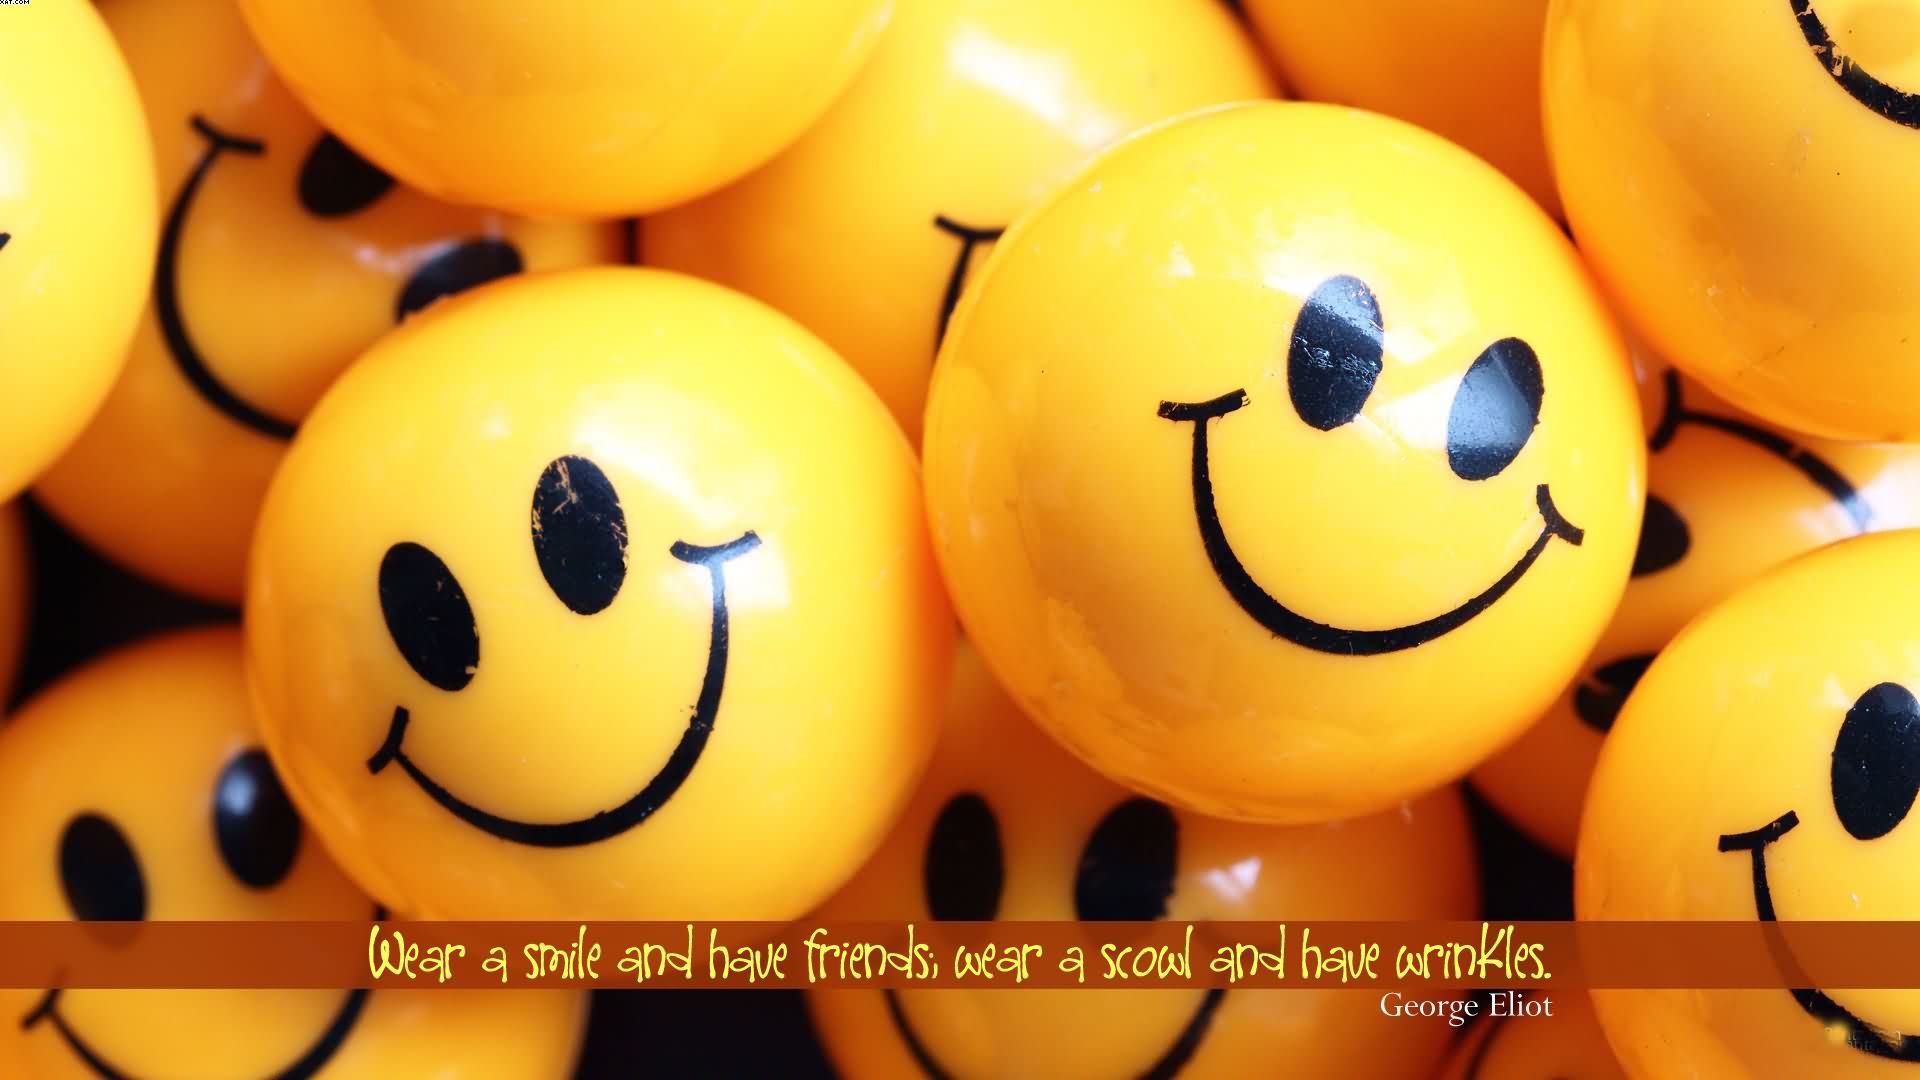 Wear A Smile And Have Friends, Wear A Scowl And Have Wrinkles. - George Eliot